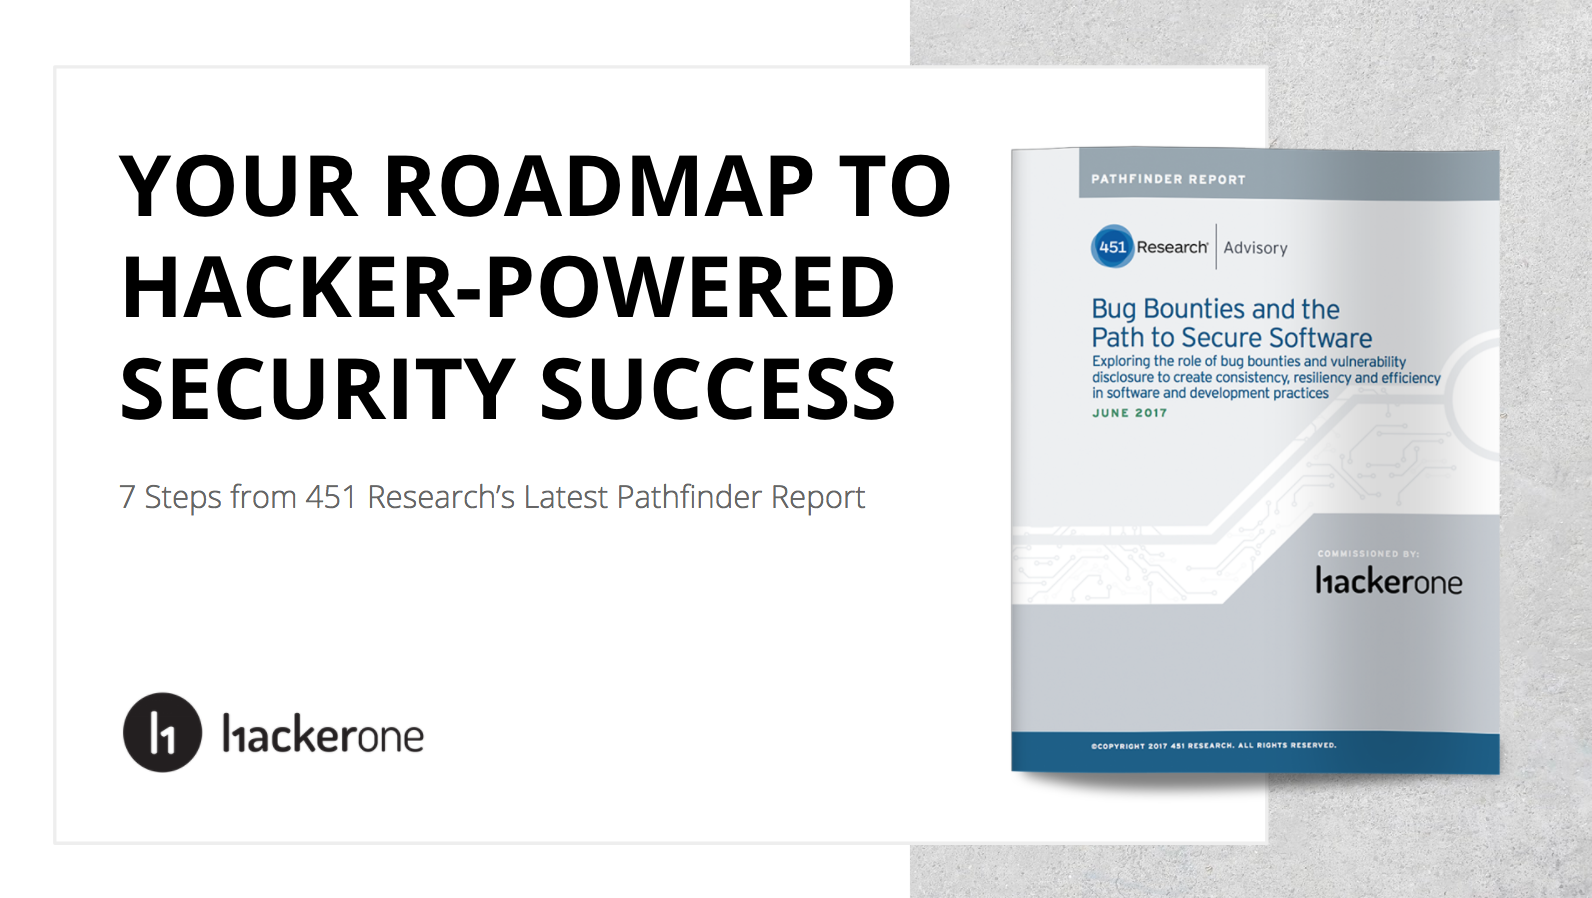 roadmap to hacker powered security success - 451 report